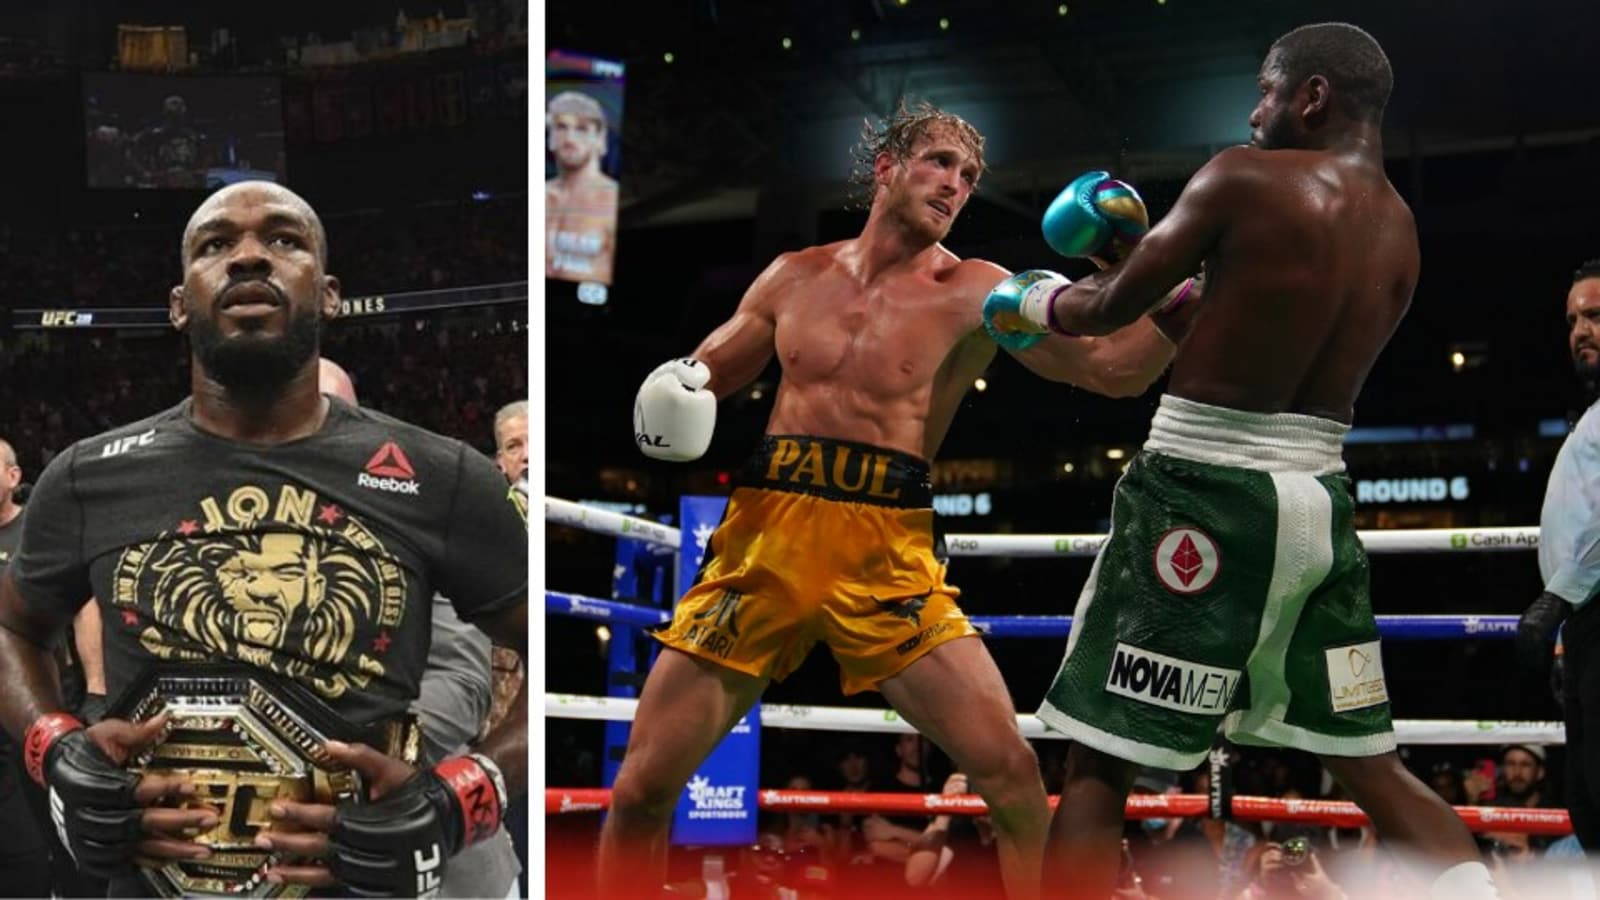 While Jones struggles to increase pay at UFC, Logan Paul gets around $20m for 'exhibition' match with Mayweather - Hindustan Tim